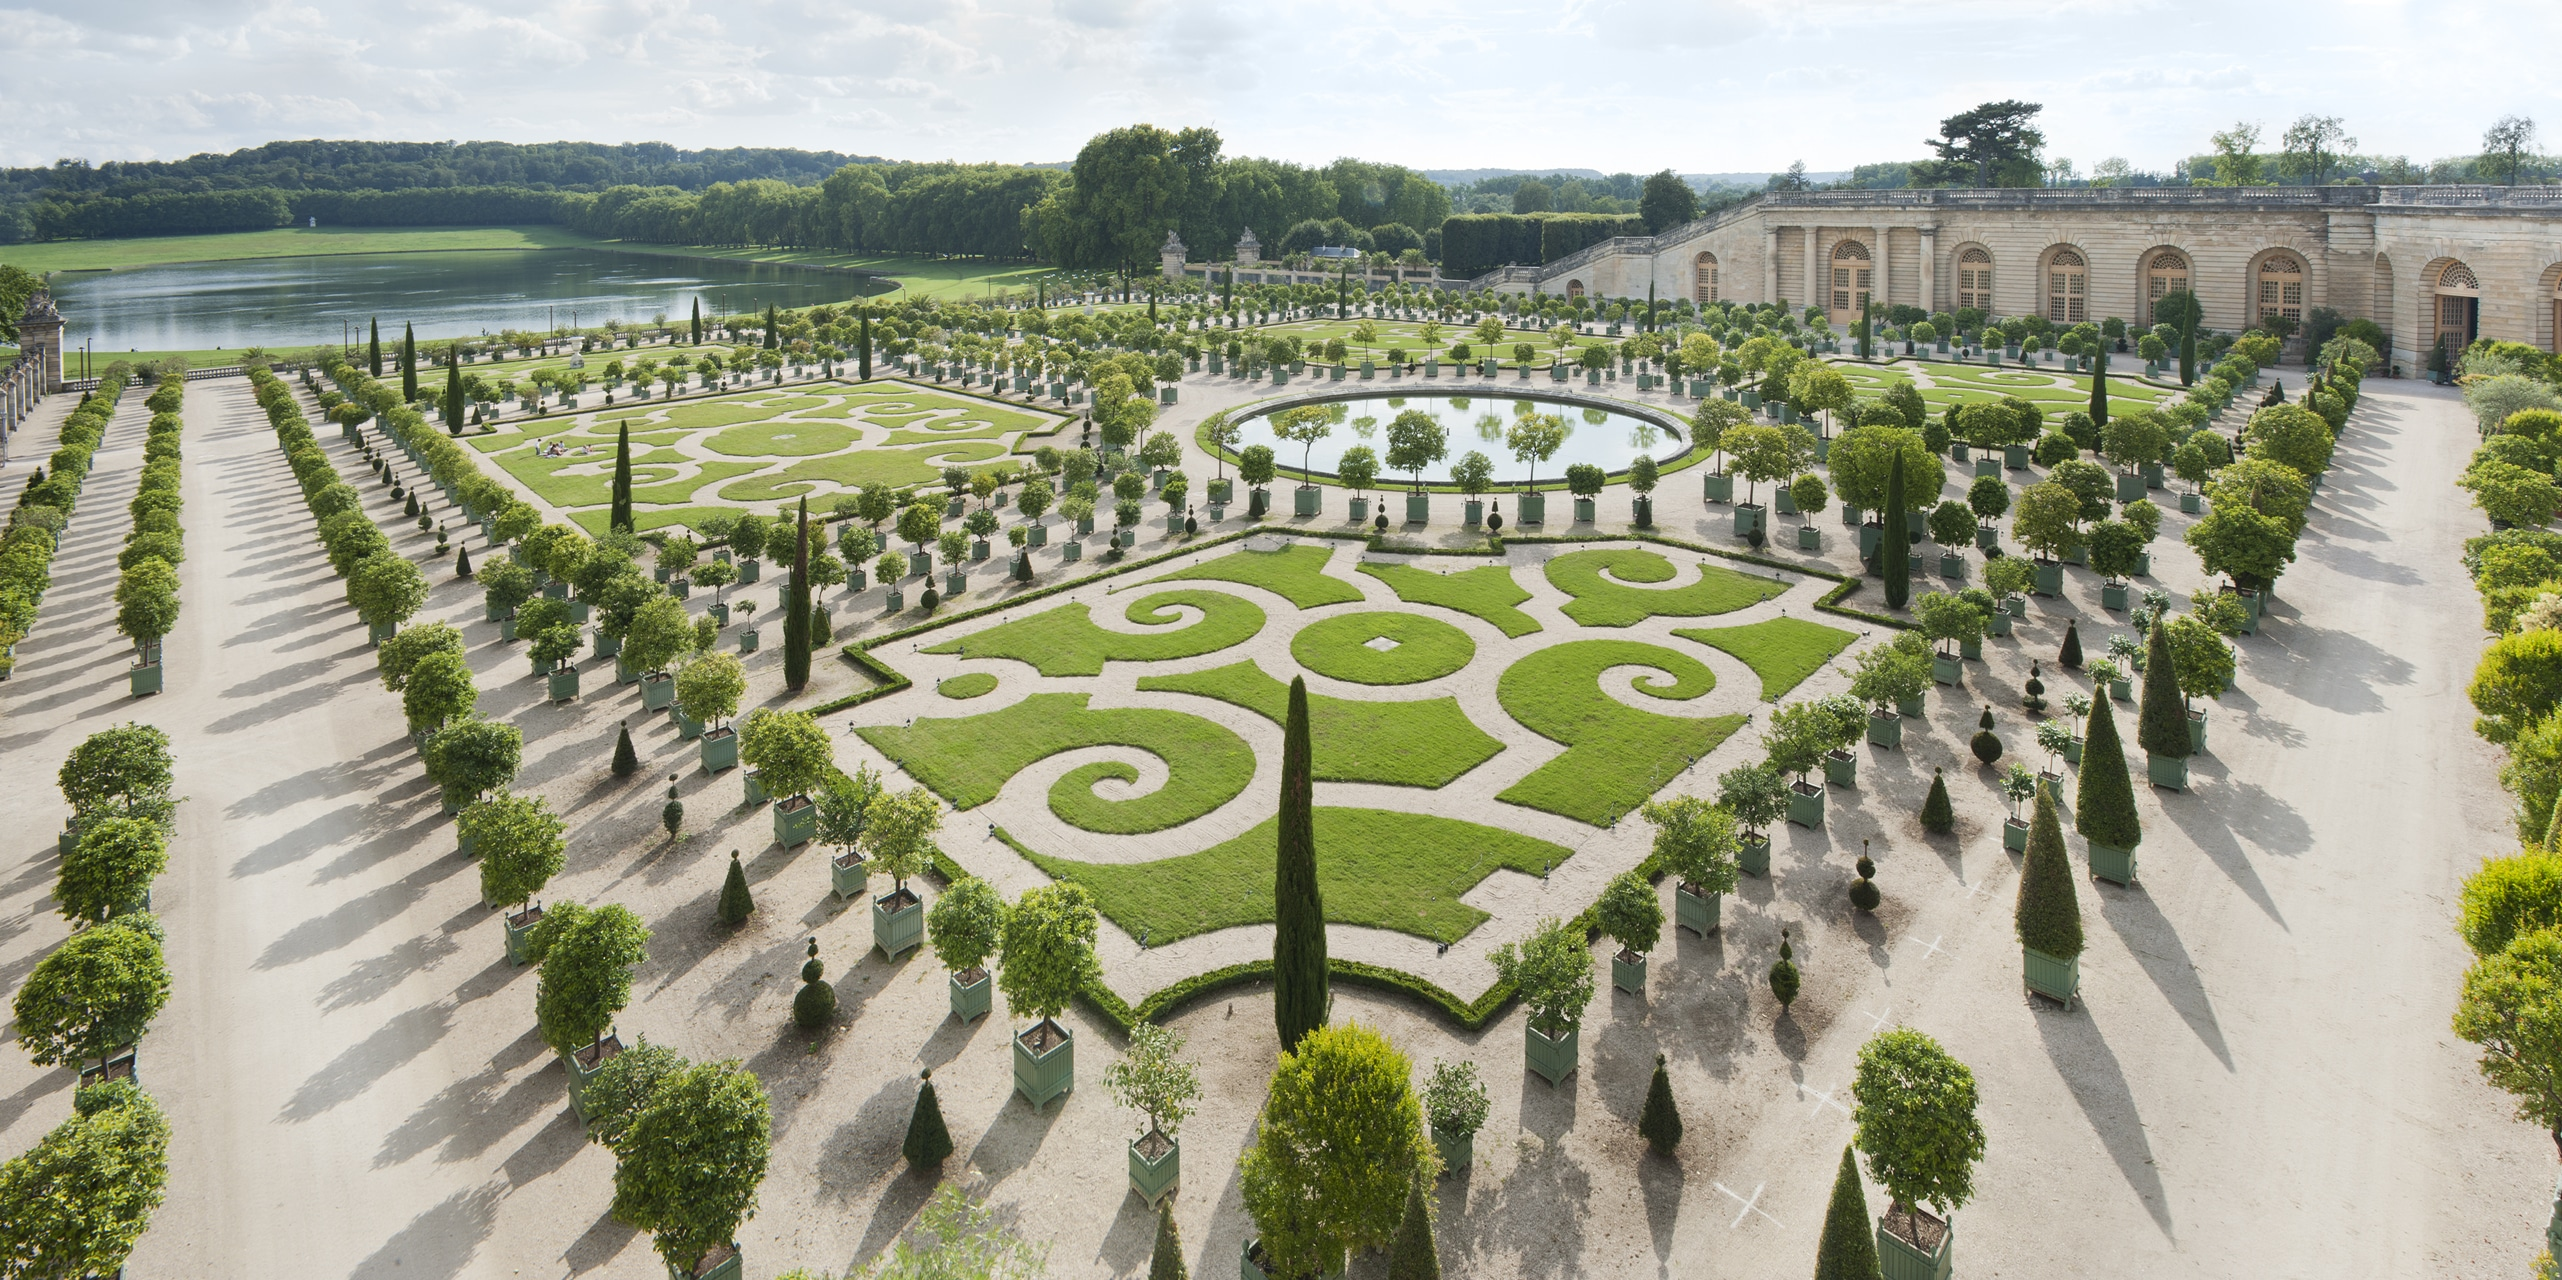 The Famous Orangerie In The Gardens At Versailles